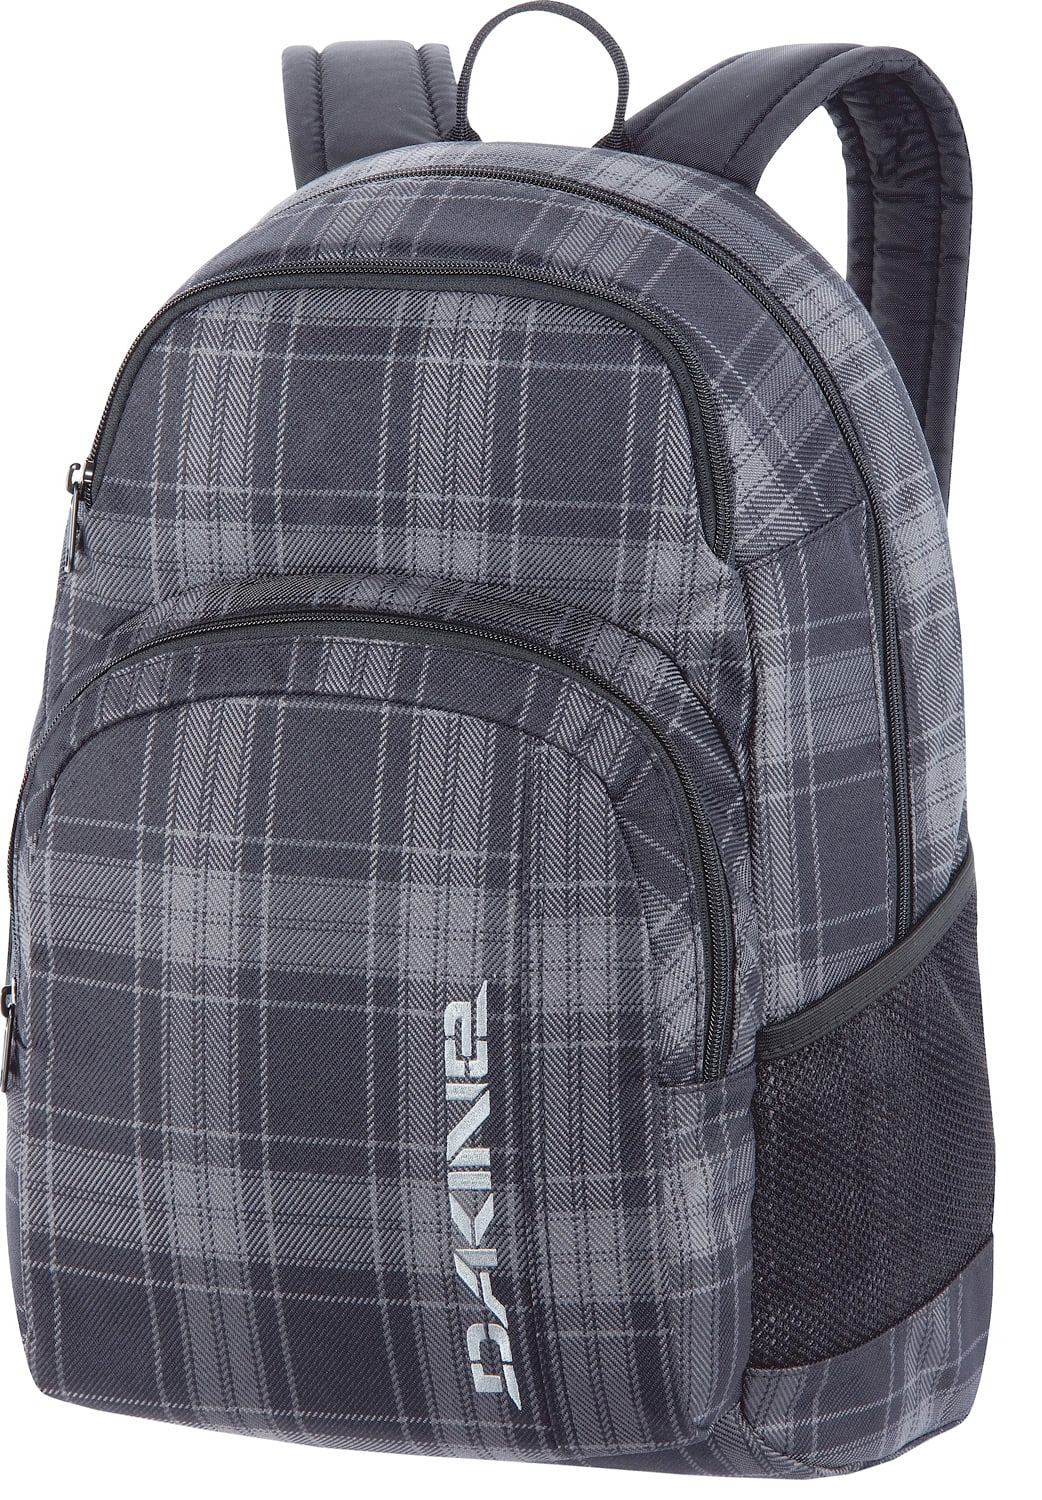 Dakine Central Backpack Northwood 26L